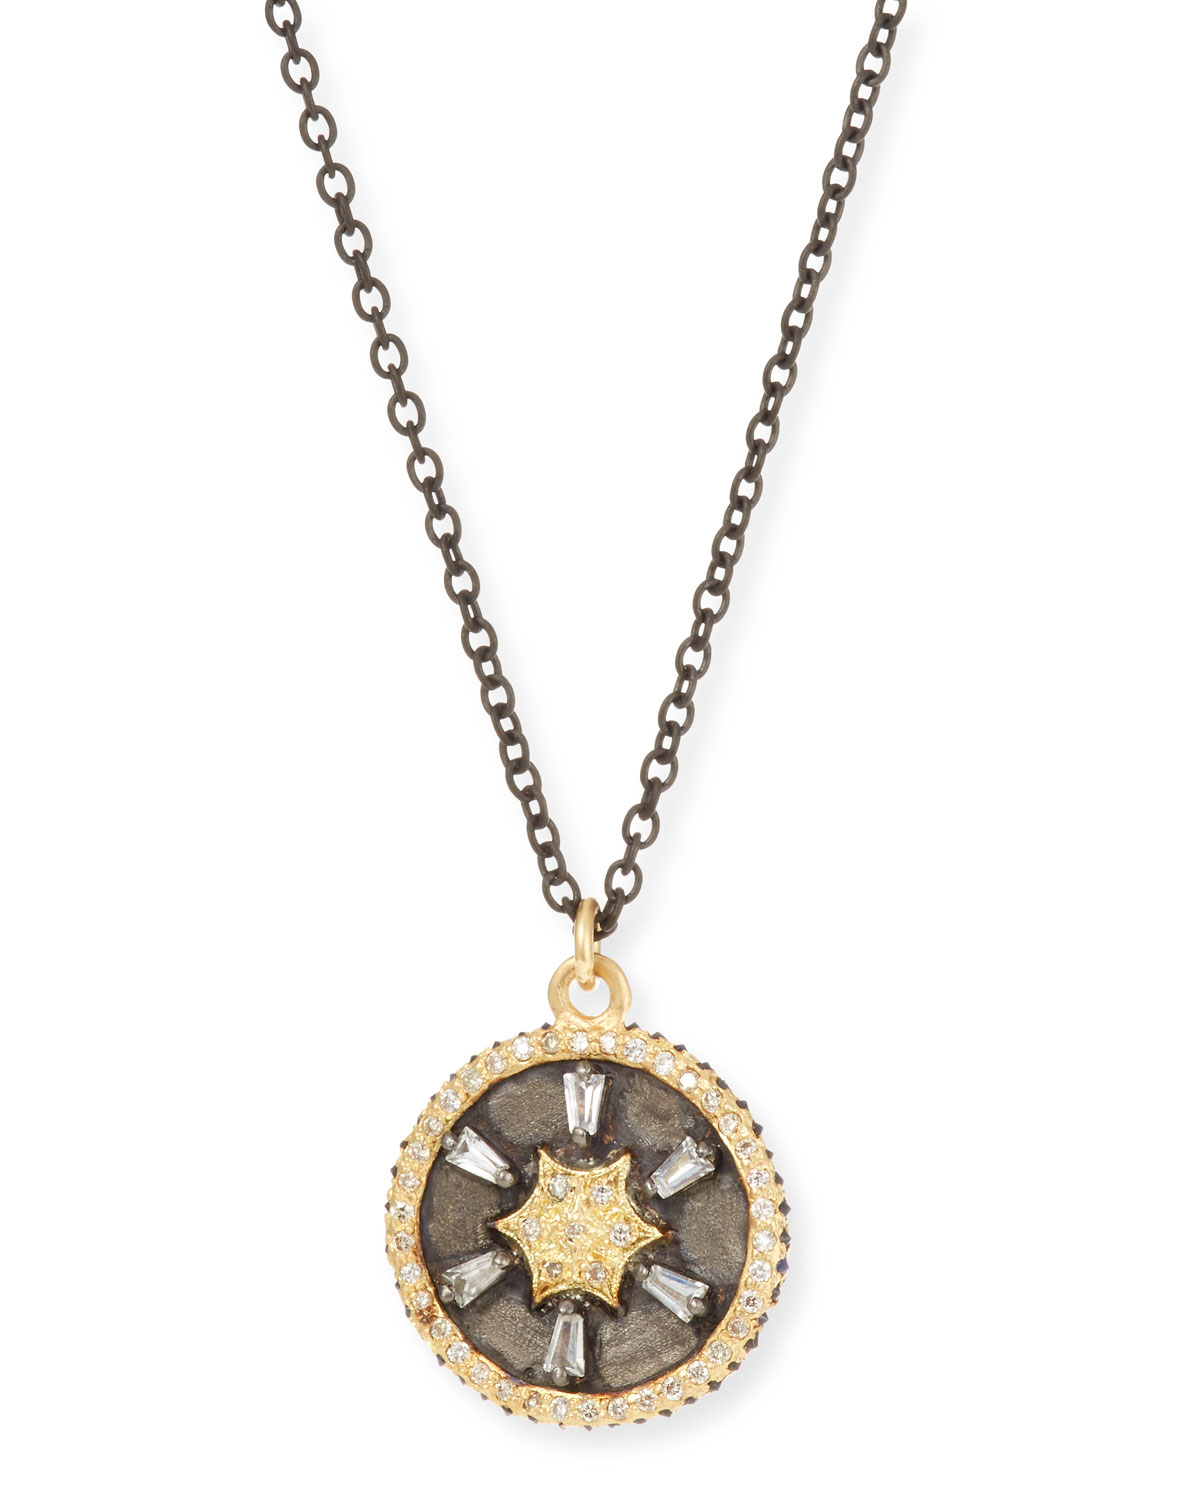 Armenta Old World 18k Gold/Silver Star Pendant Necklace w/ Diamonds